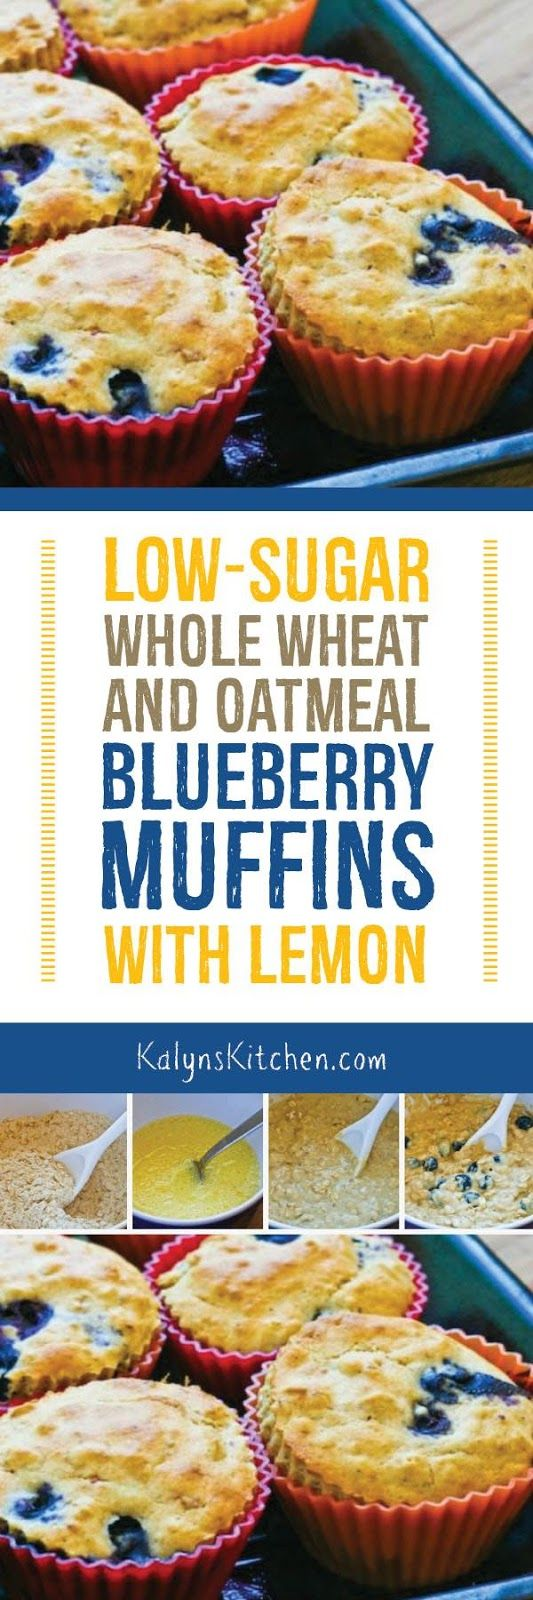 These delicious Low-Sugar Whole Wheat and Oatmeal Blueberry Muffins with Lemon are sweetened with Stevia for a whole grain muffin that's a healthy treat! [found on KalynsKitchen.com]